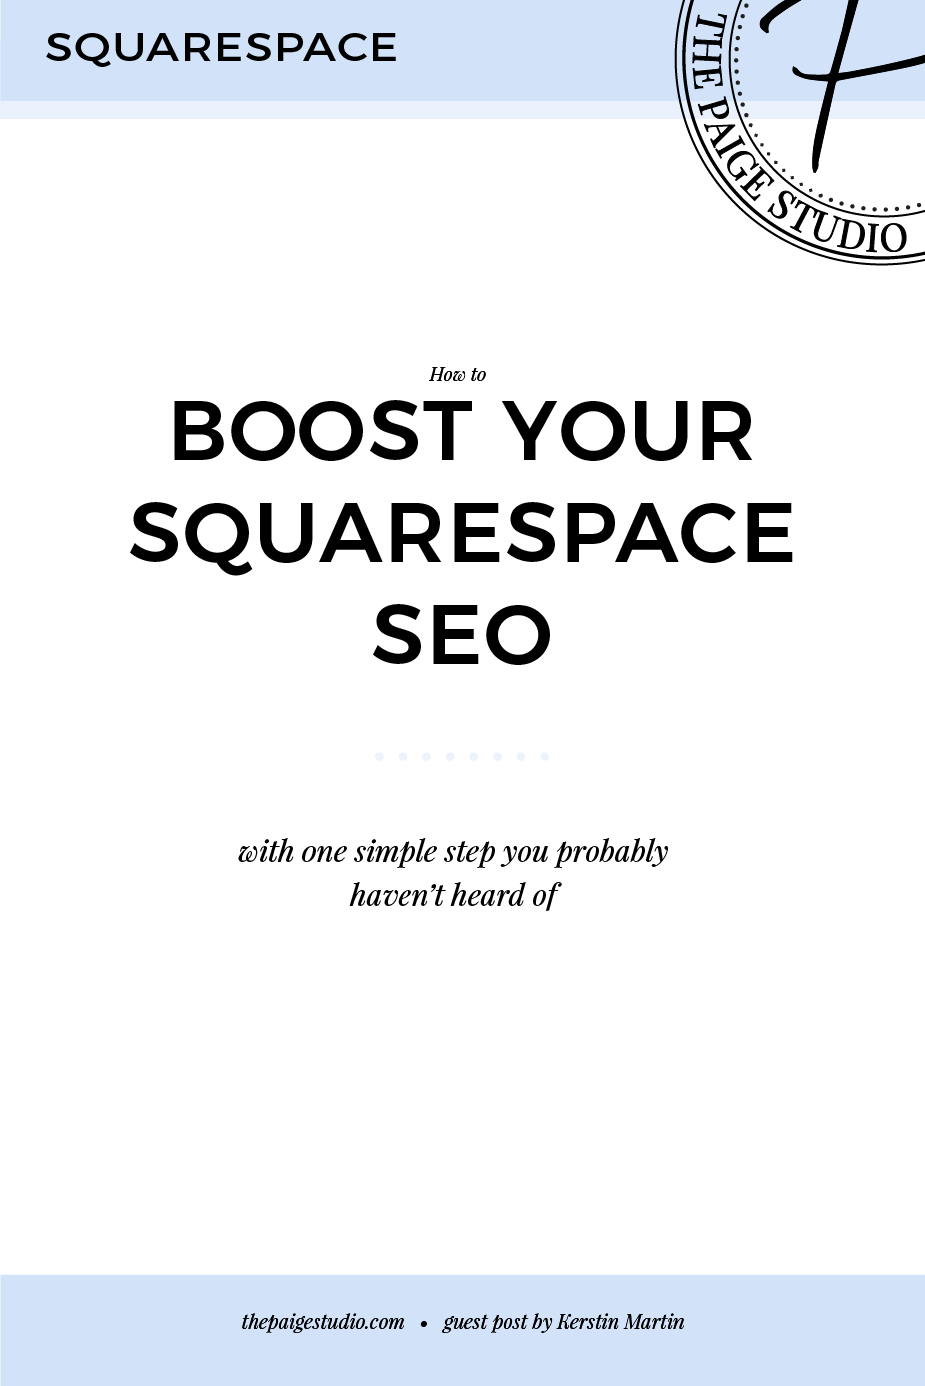 Boost your Squarespace SEO with one simple step that you probably haven't heard of!